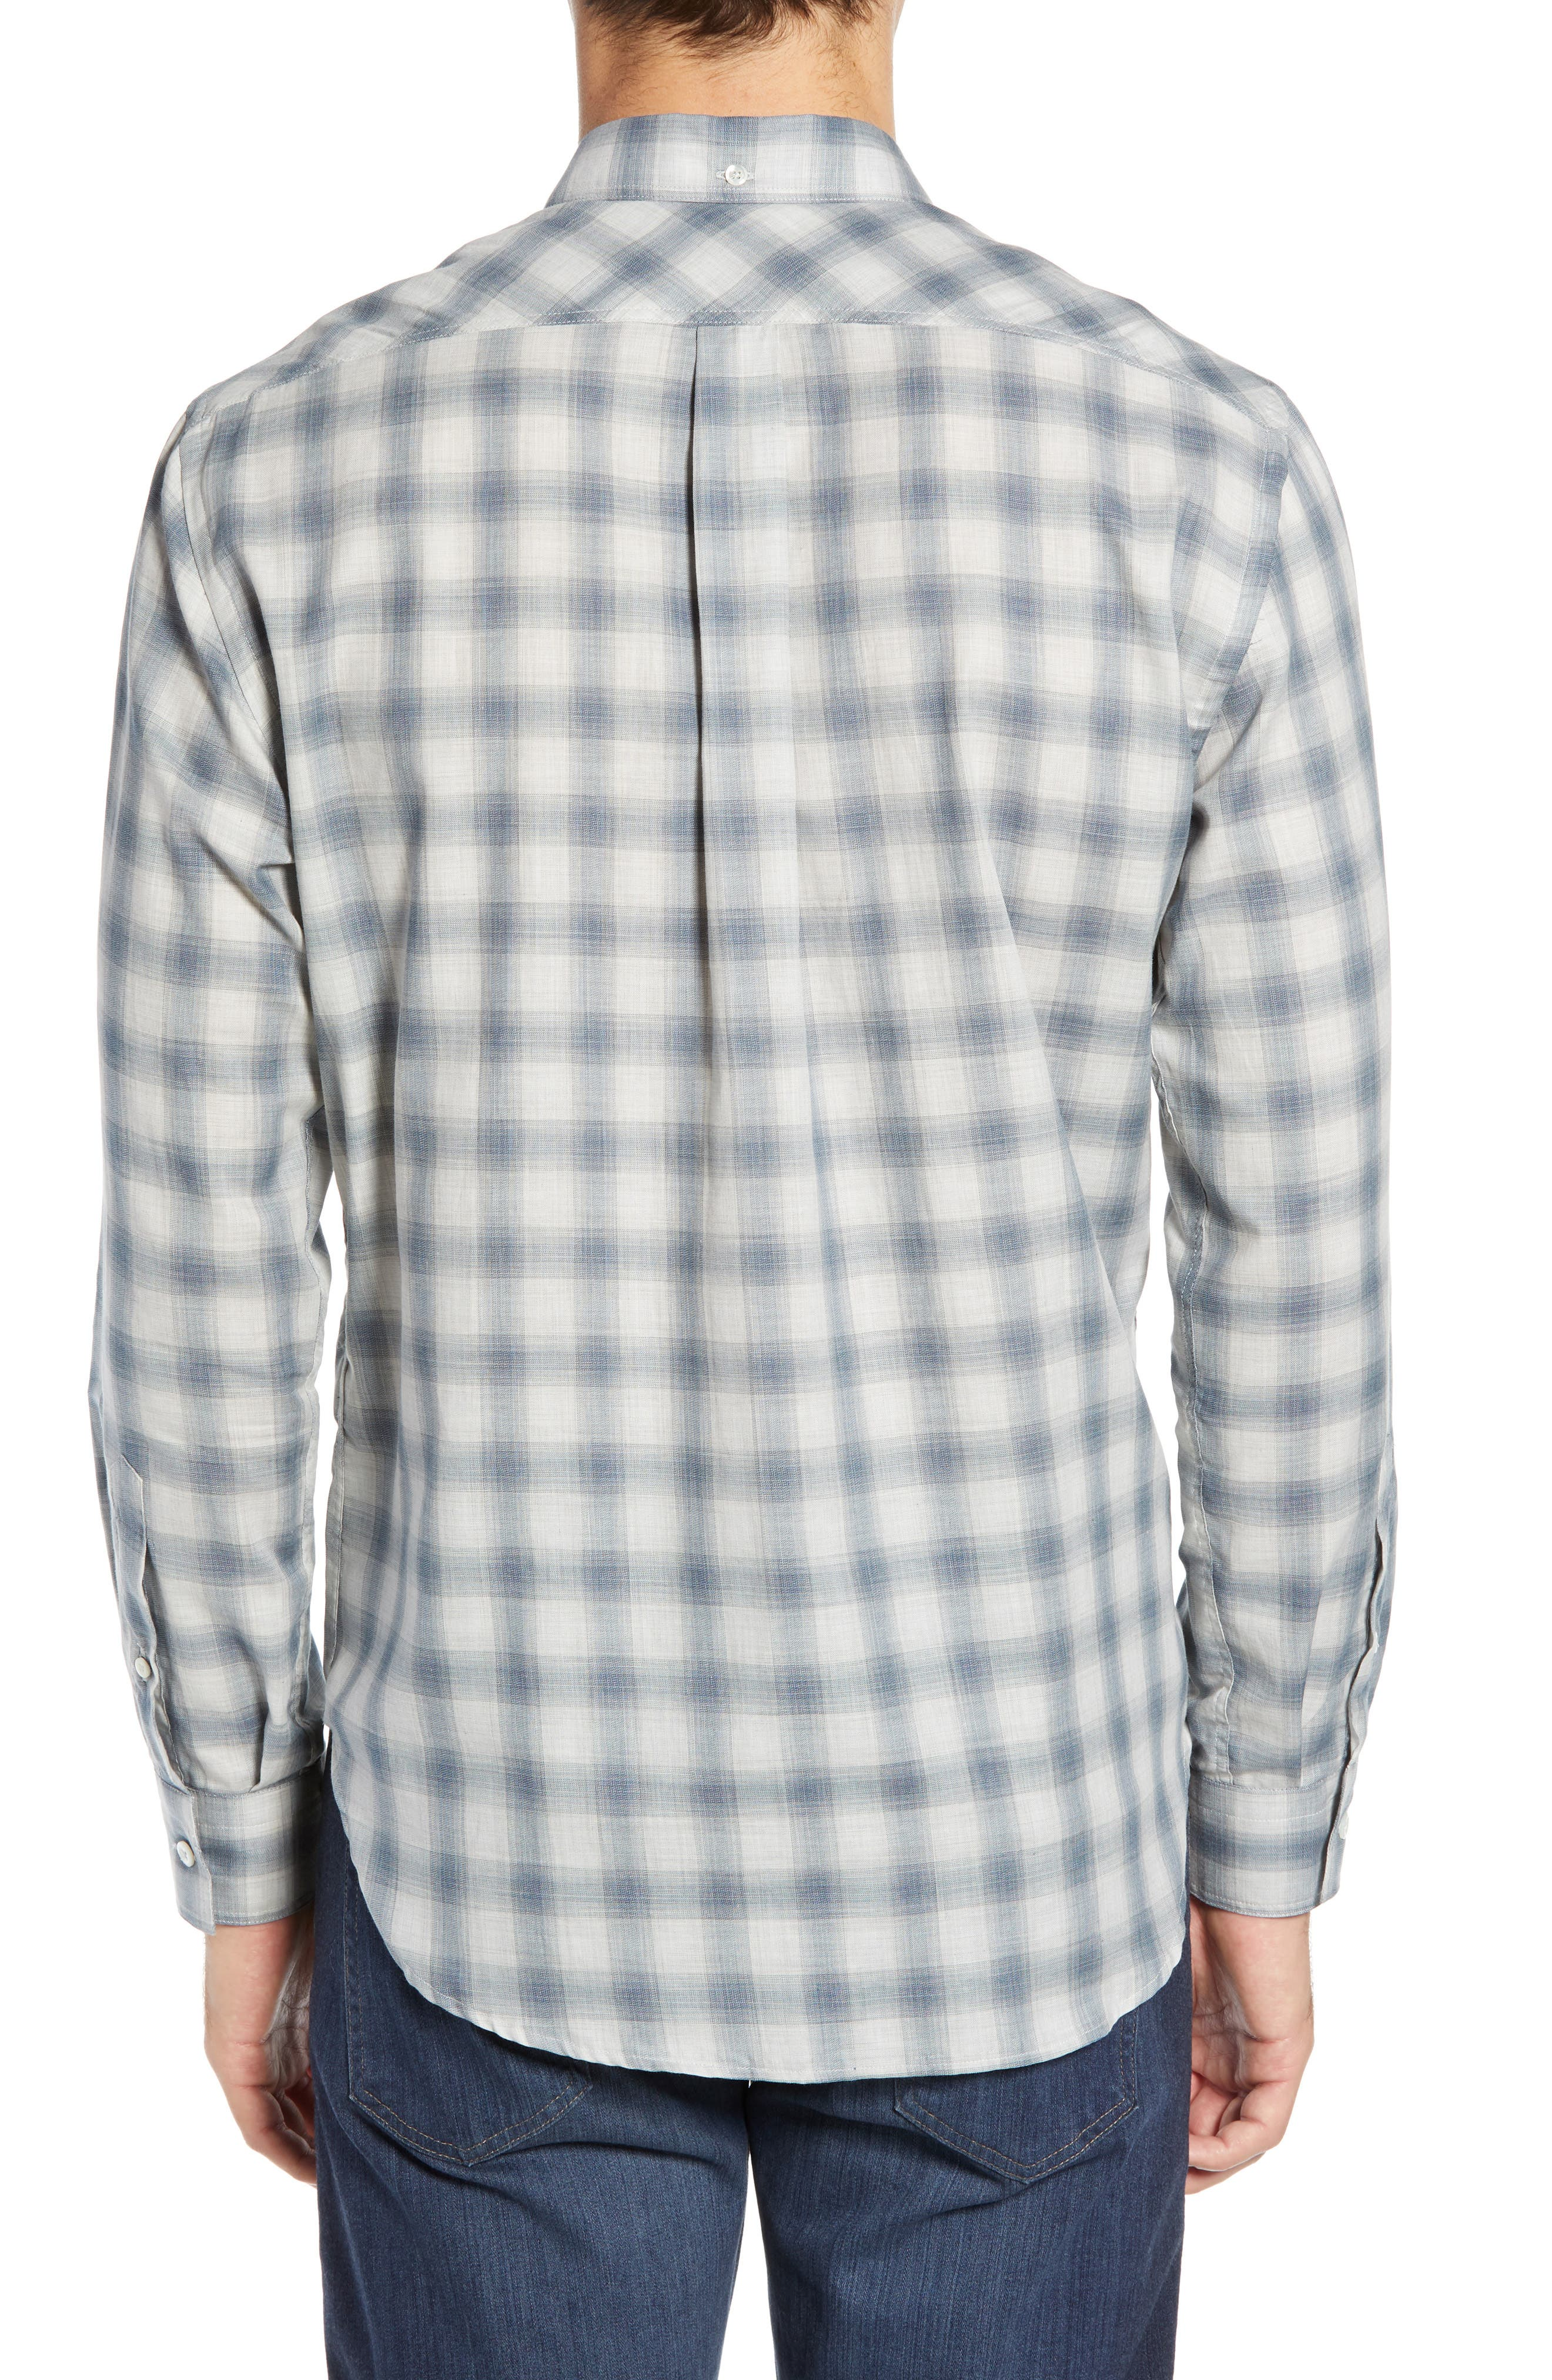 Tuscumbia Regular Fit Pattern Sport Shirt,                             Alternate thumbnail 3, color,                             BLUE/ GREY